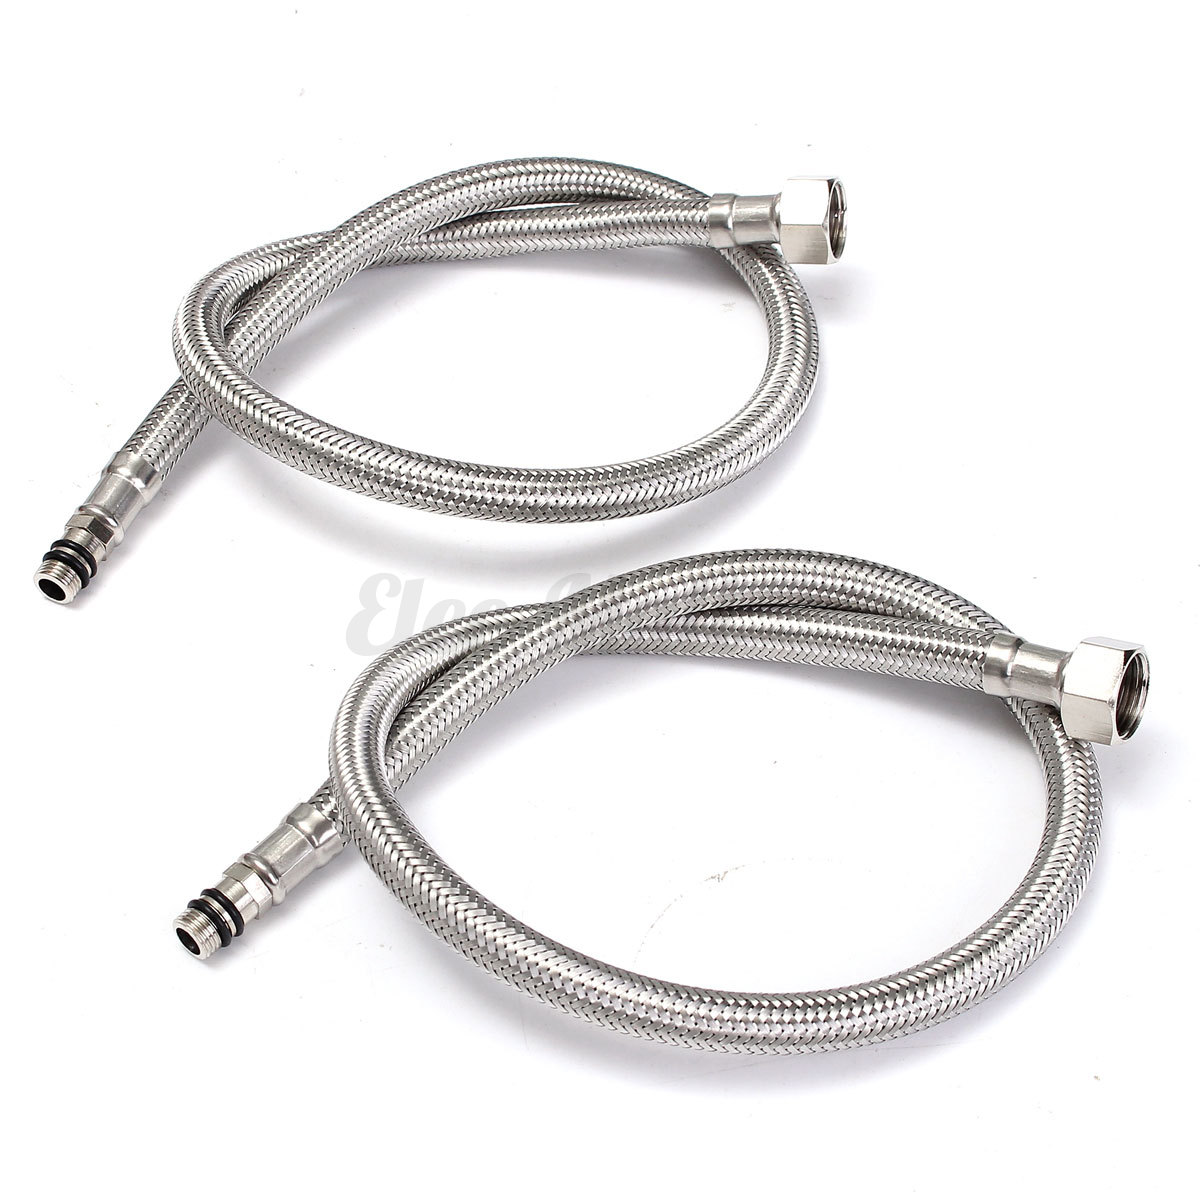 water hose for kitchen sink installing flooring 3 8 quot od 6mm id vessel vanity faucet supply